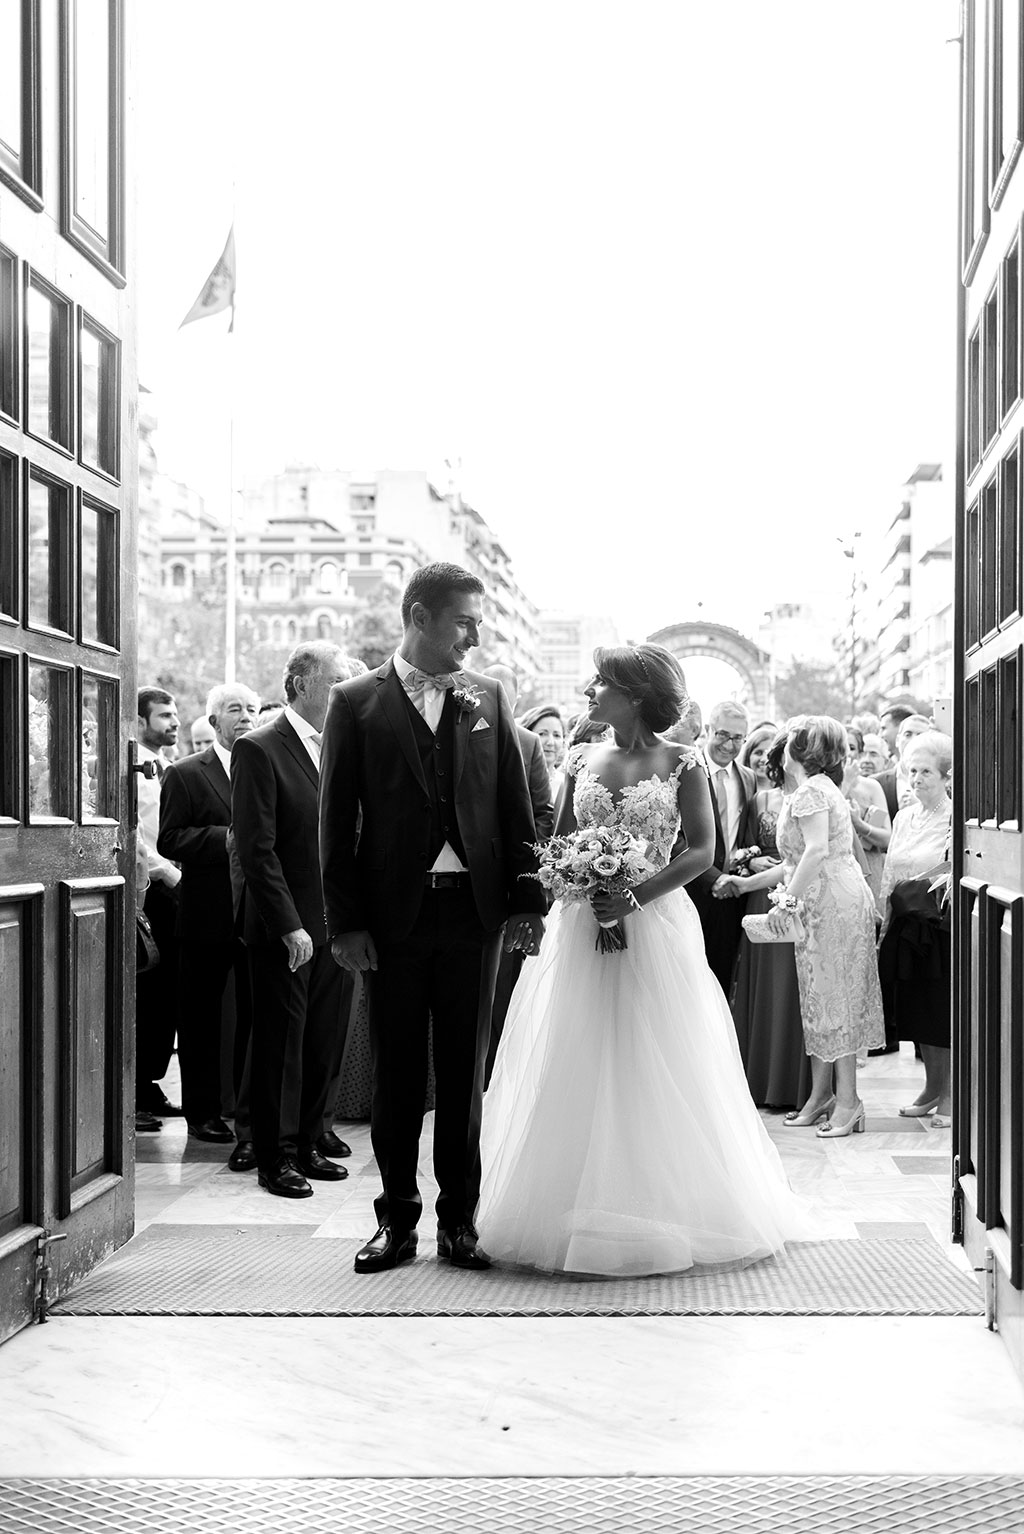 Black and white portrait of bride and groom in a wedding in thessaloniki